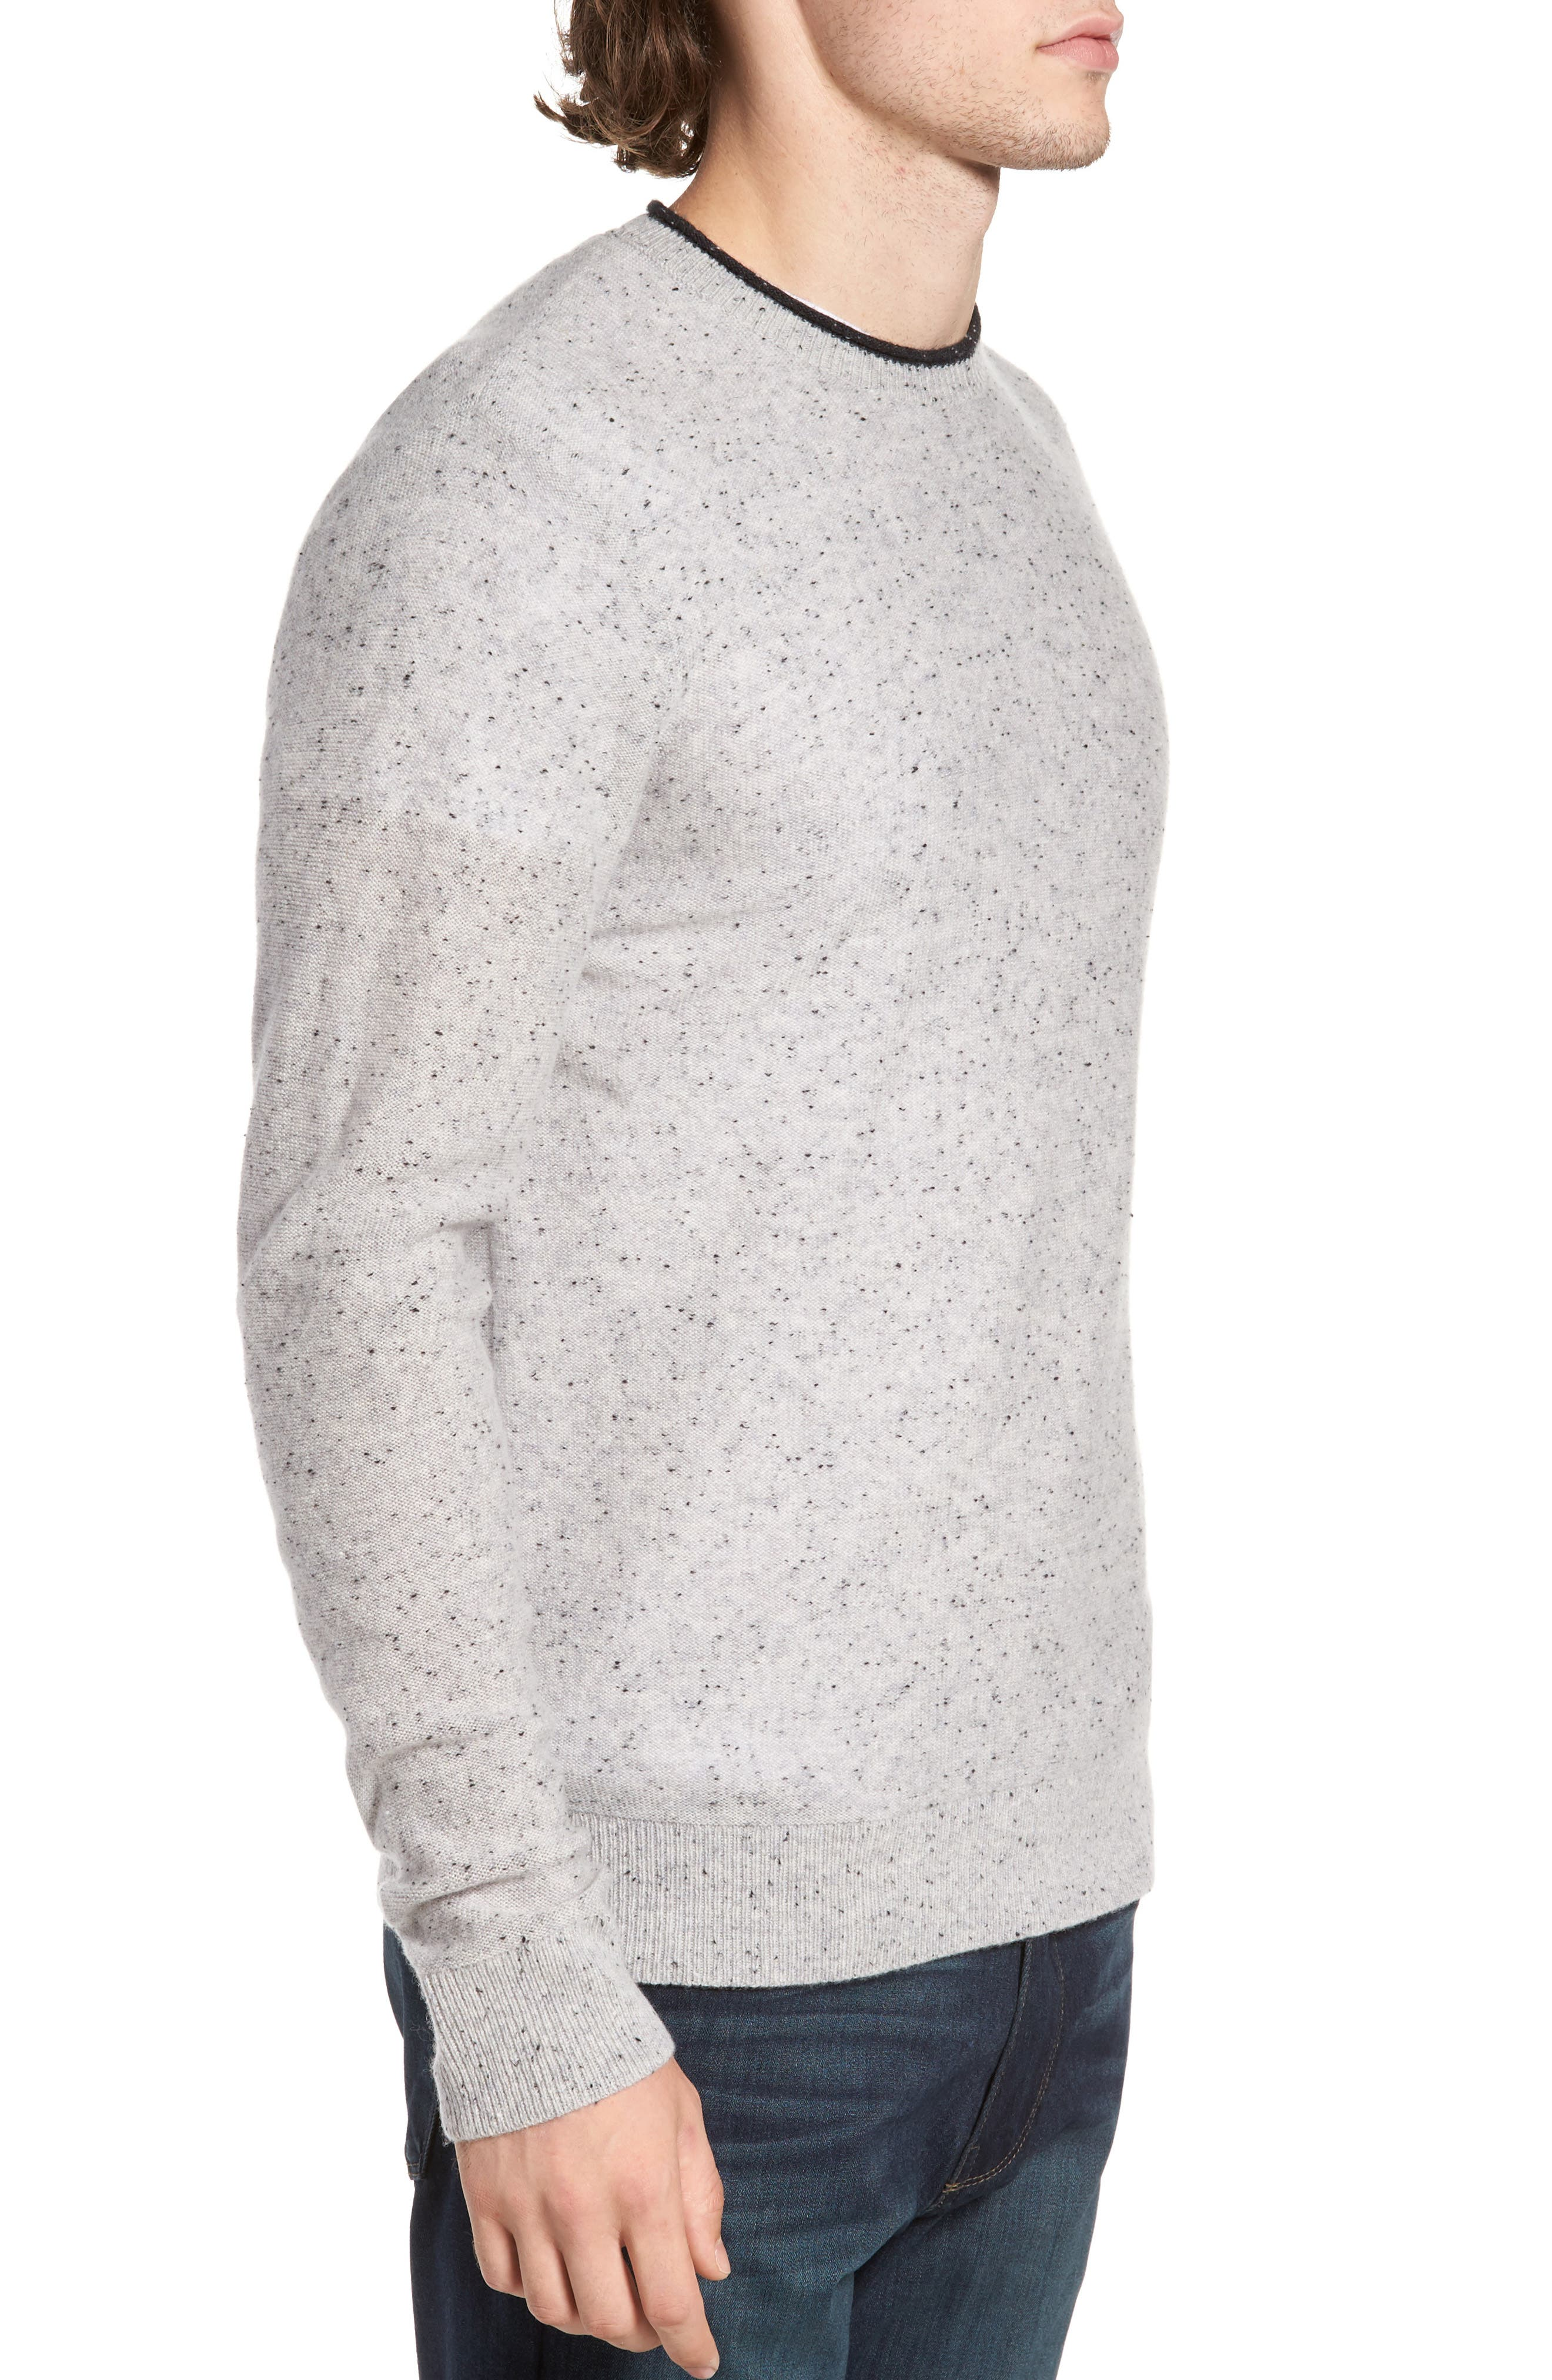 Nep Wool & Cashmere Sweater,                             Alternate thumbnail 3, color,                             Grey Donegal